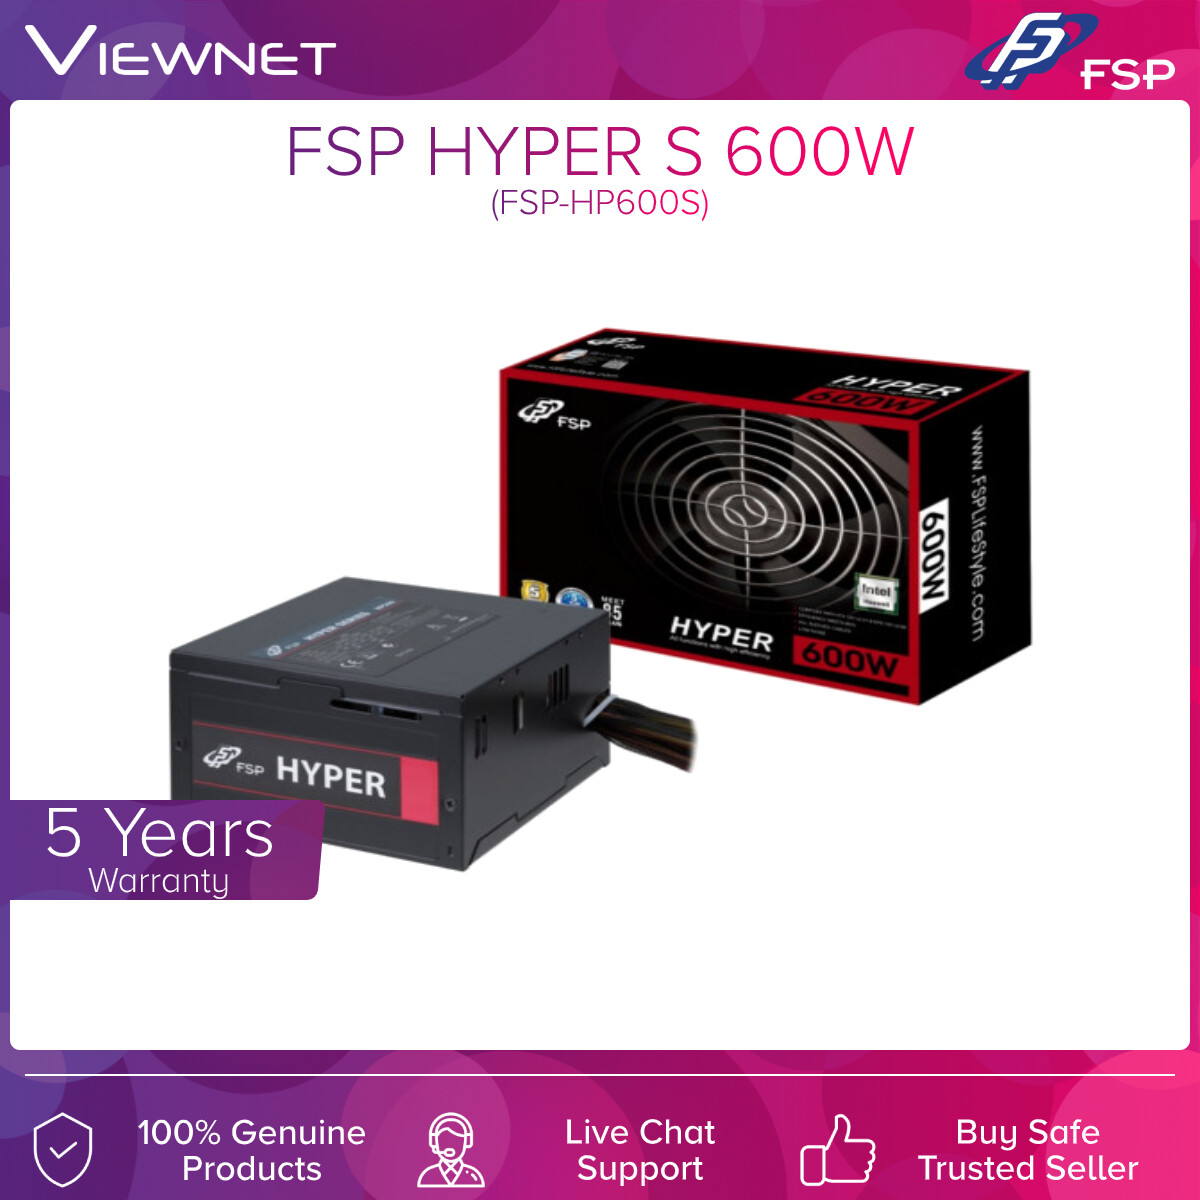 FSP Power Supply HYPER S 600W, HYPER Series Power Supply meets the market mainstream and provides efficiency more than 85%.With the +12 single rail design, SATA array cable, optimized the airflow in case, no-hassle with case side panel